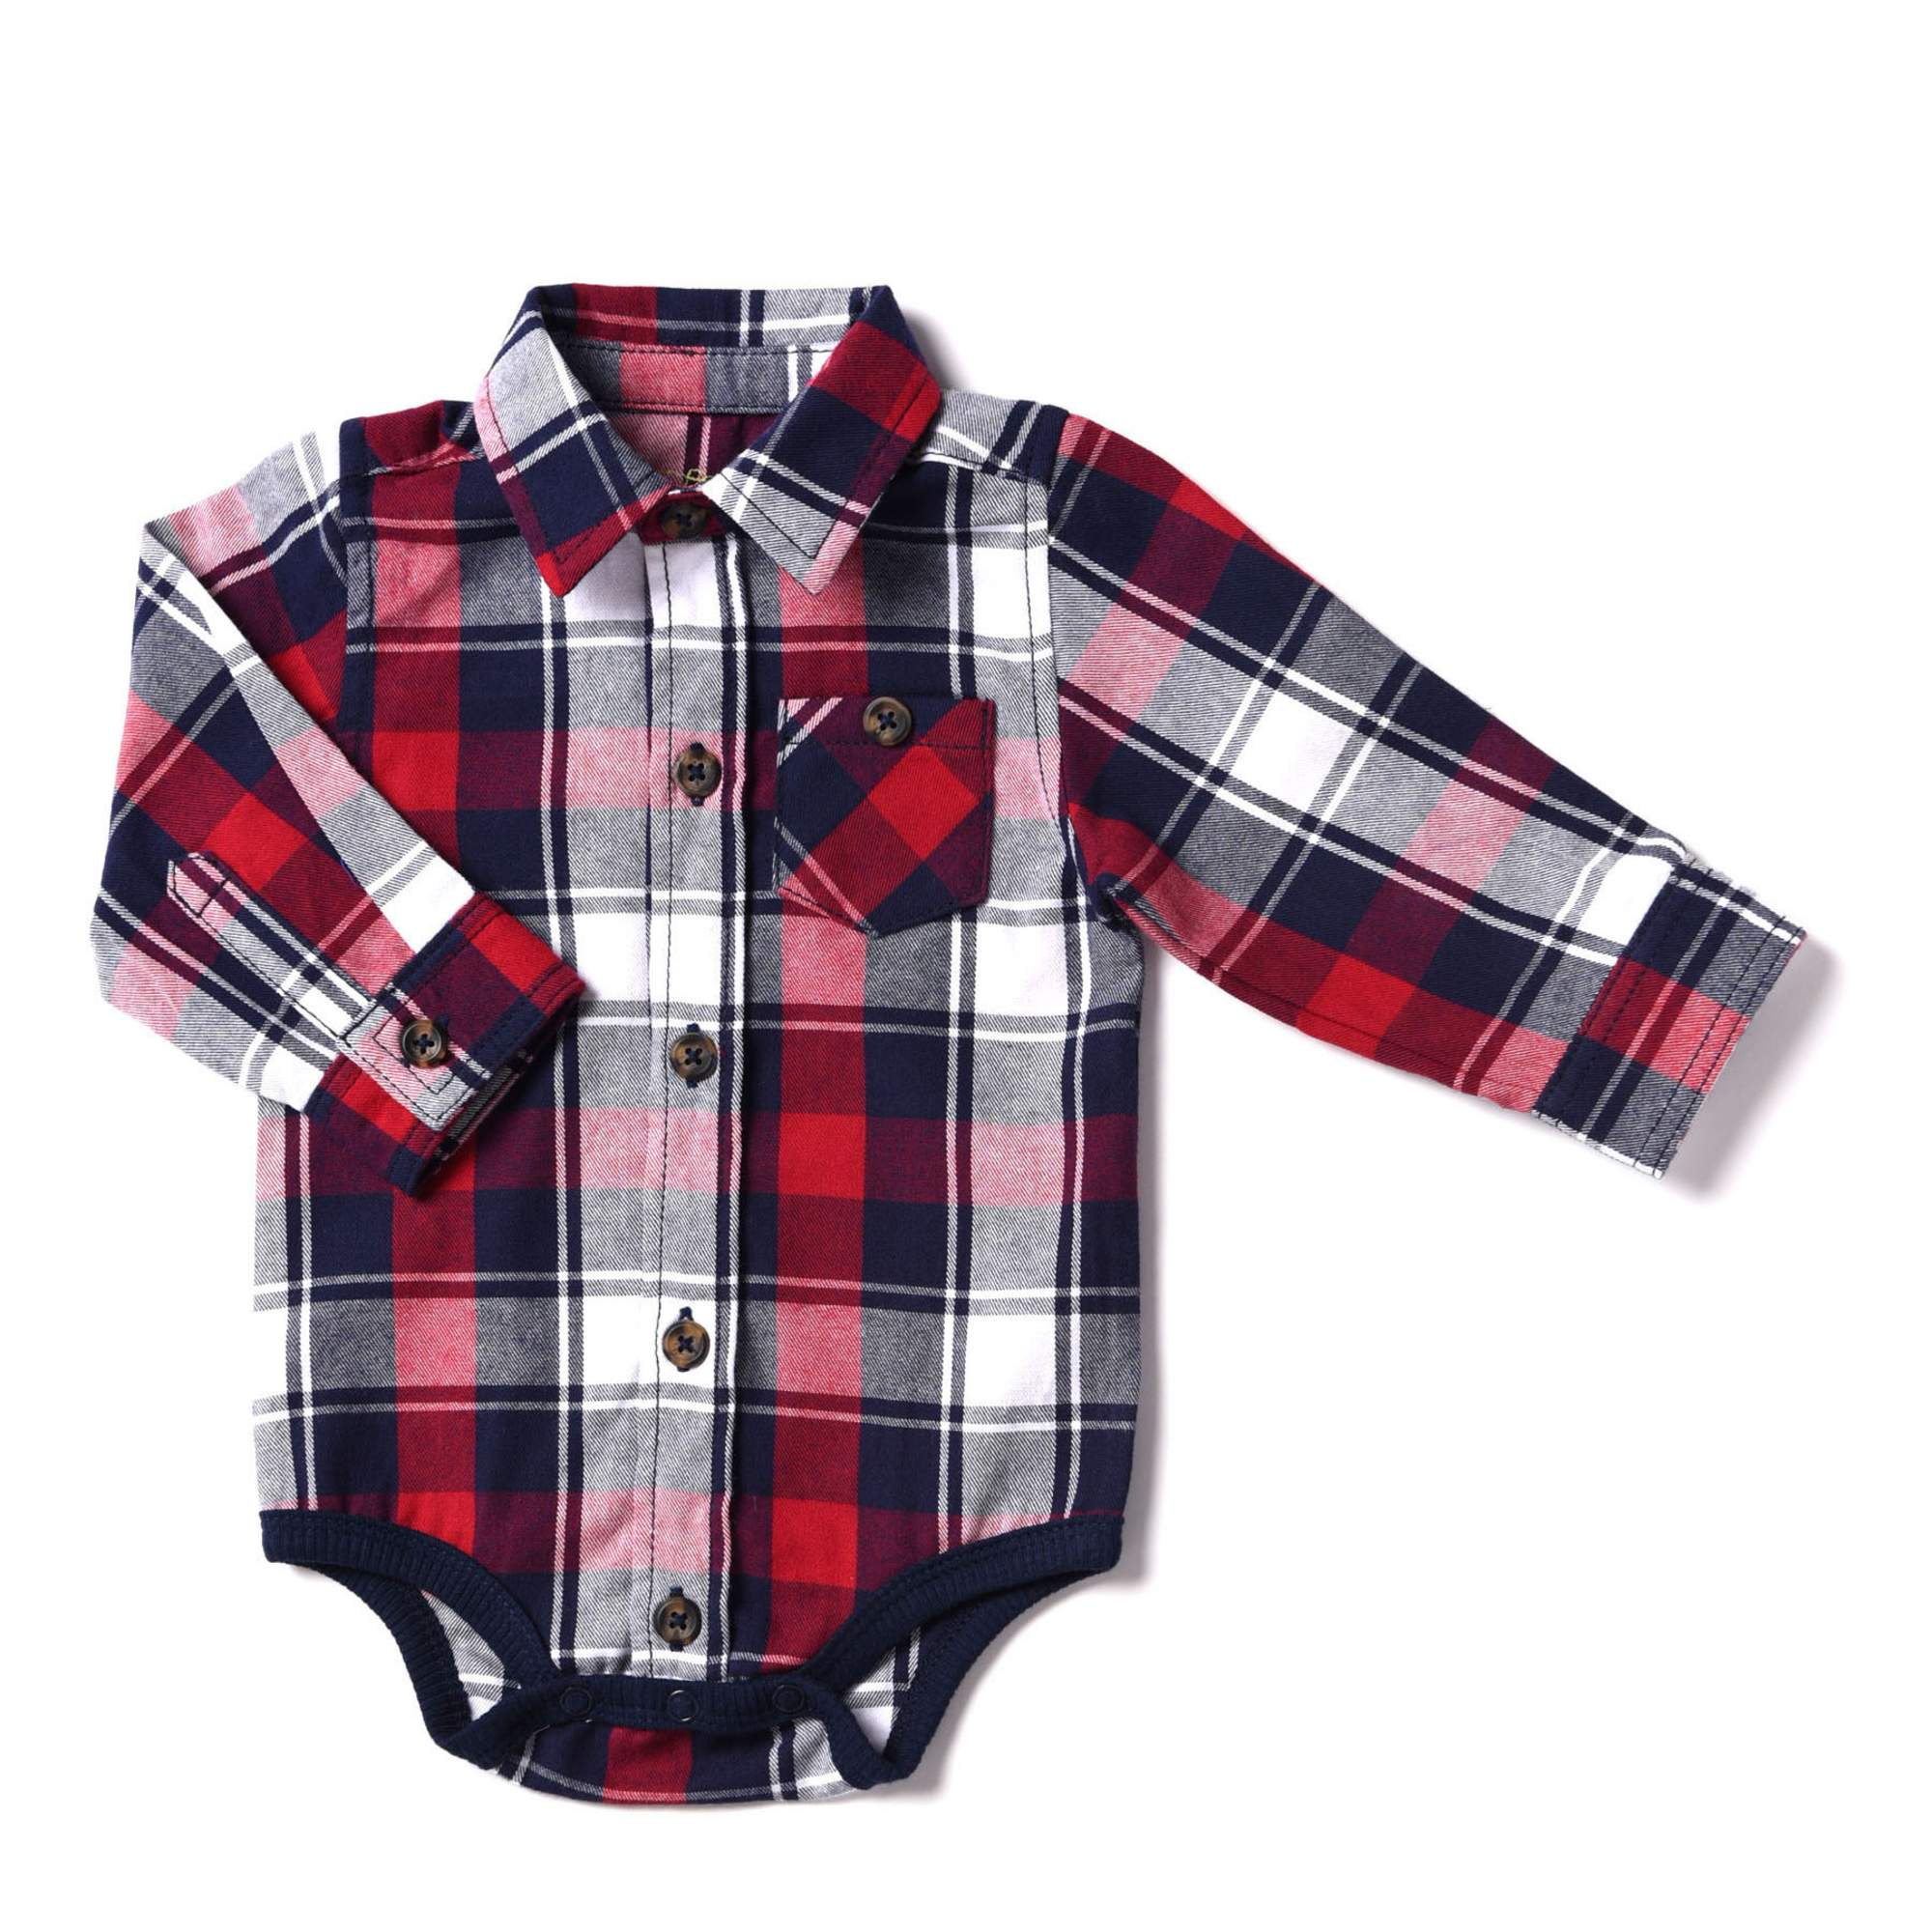 Kapital K Newborn Baby Boy Flannel Plaid Bodysuit